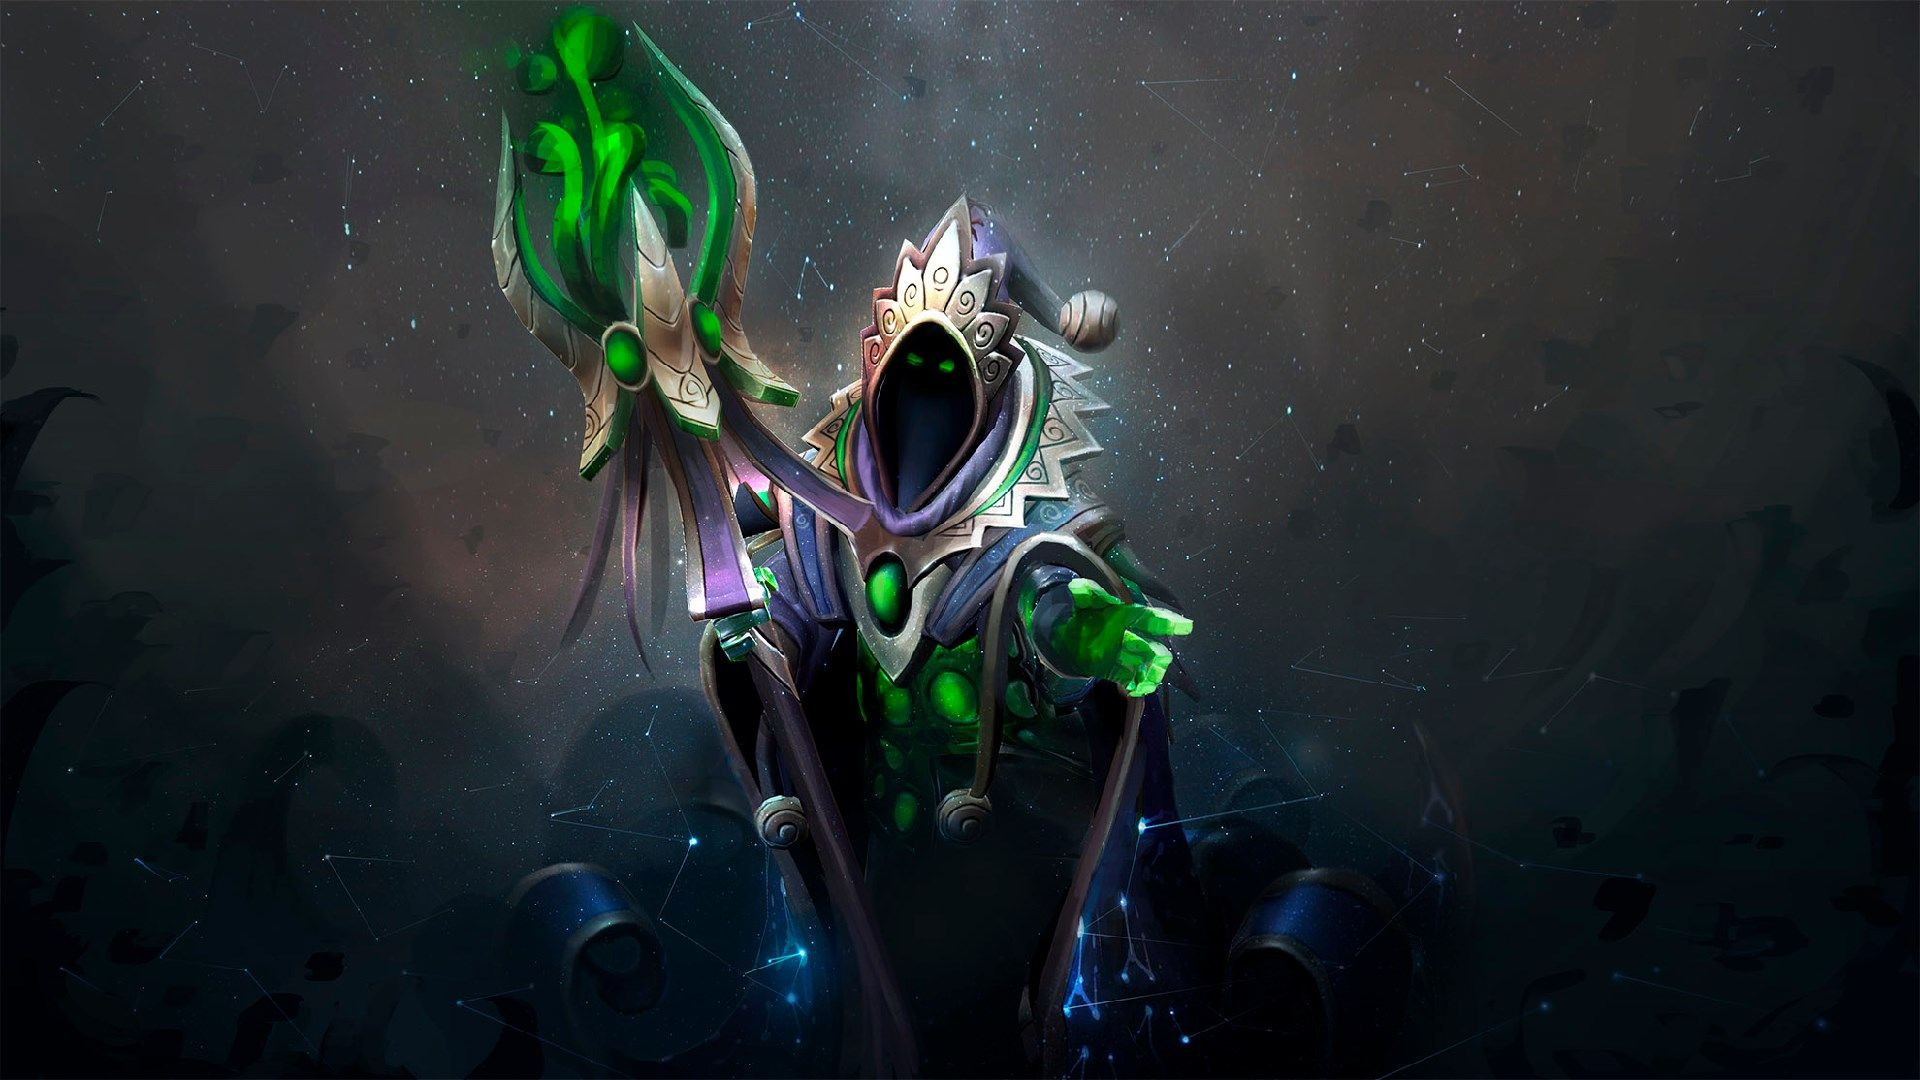 Dota 2 1080p High Quality 1920x1080 Defense Of The Ancients Hd